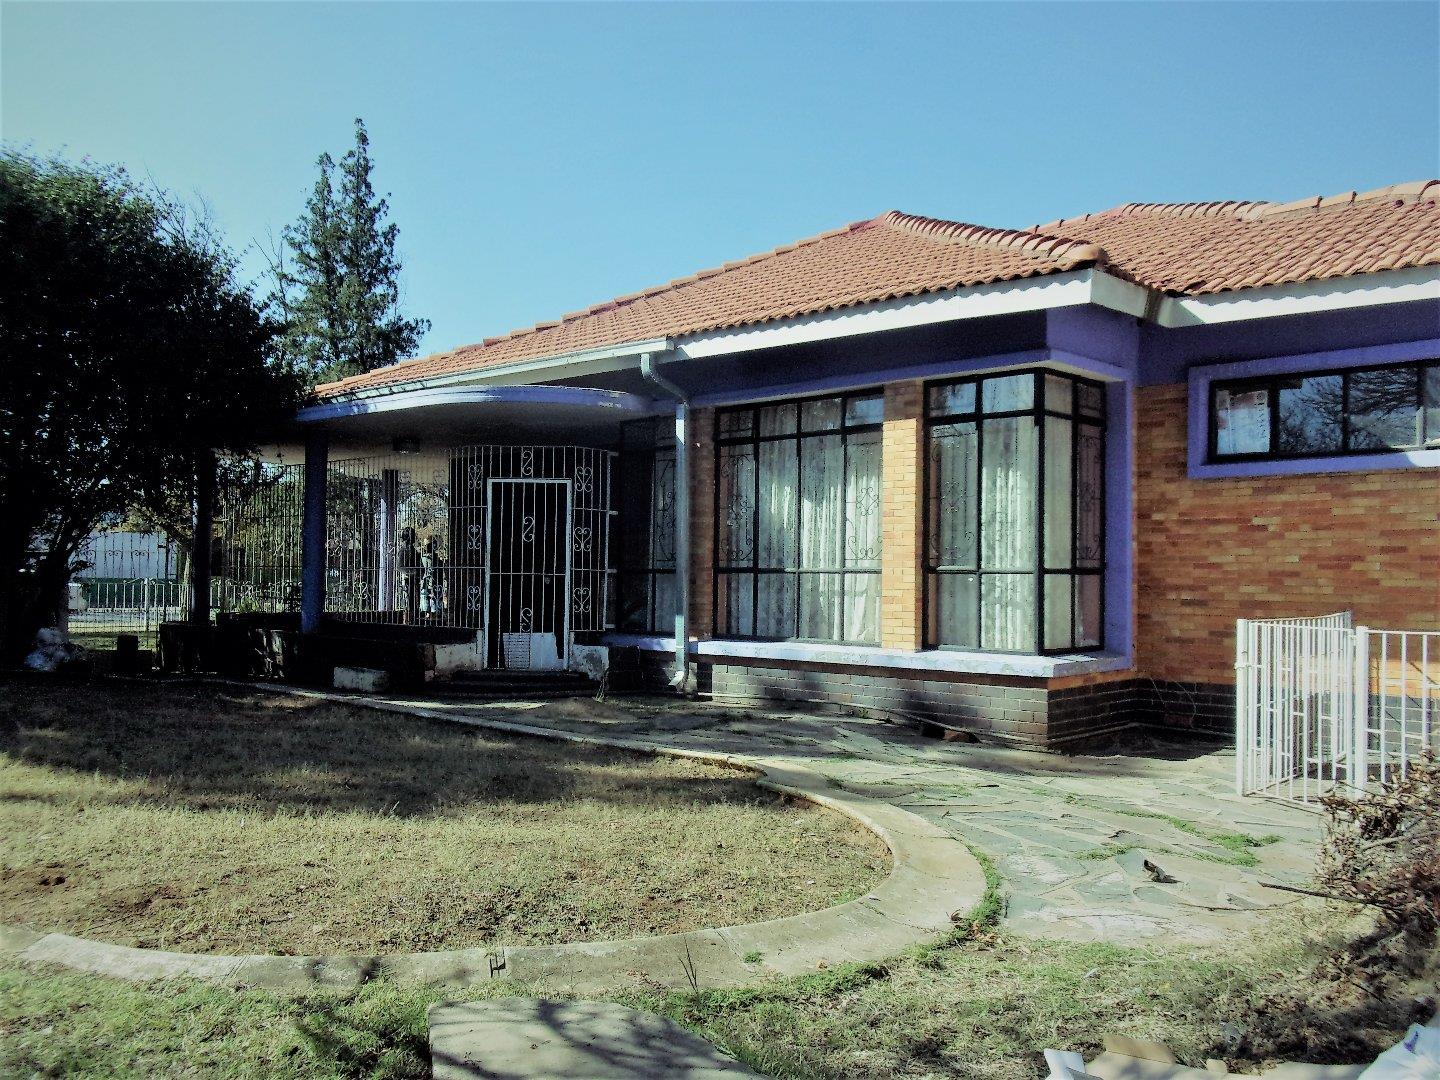 3 bedroom house for sale in vereeniging central